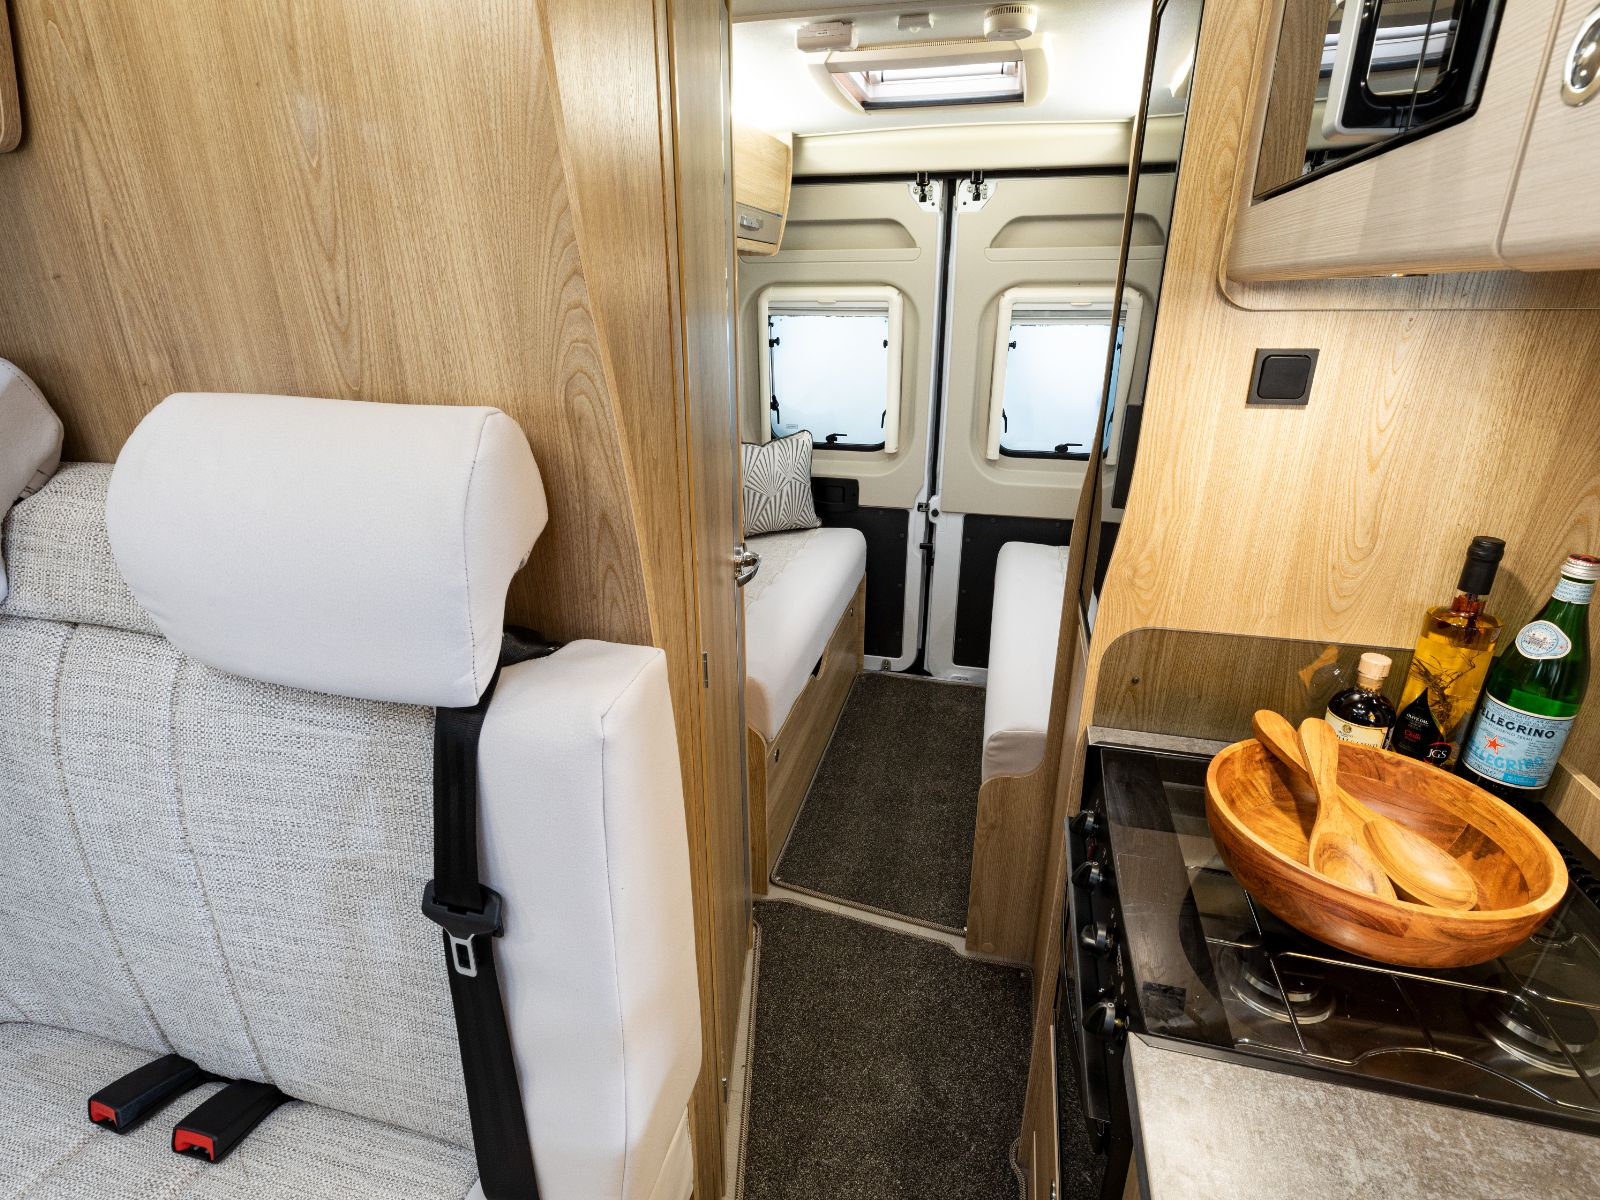 Magnum GTV Campervan Kitchen Area with View of Lounge'